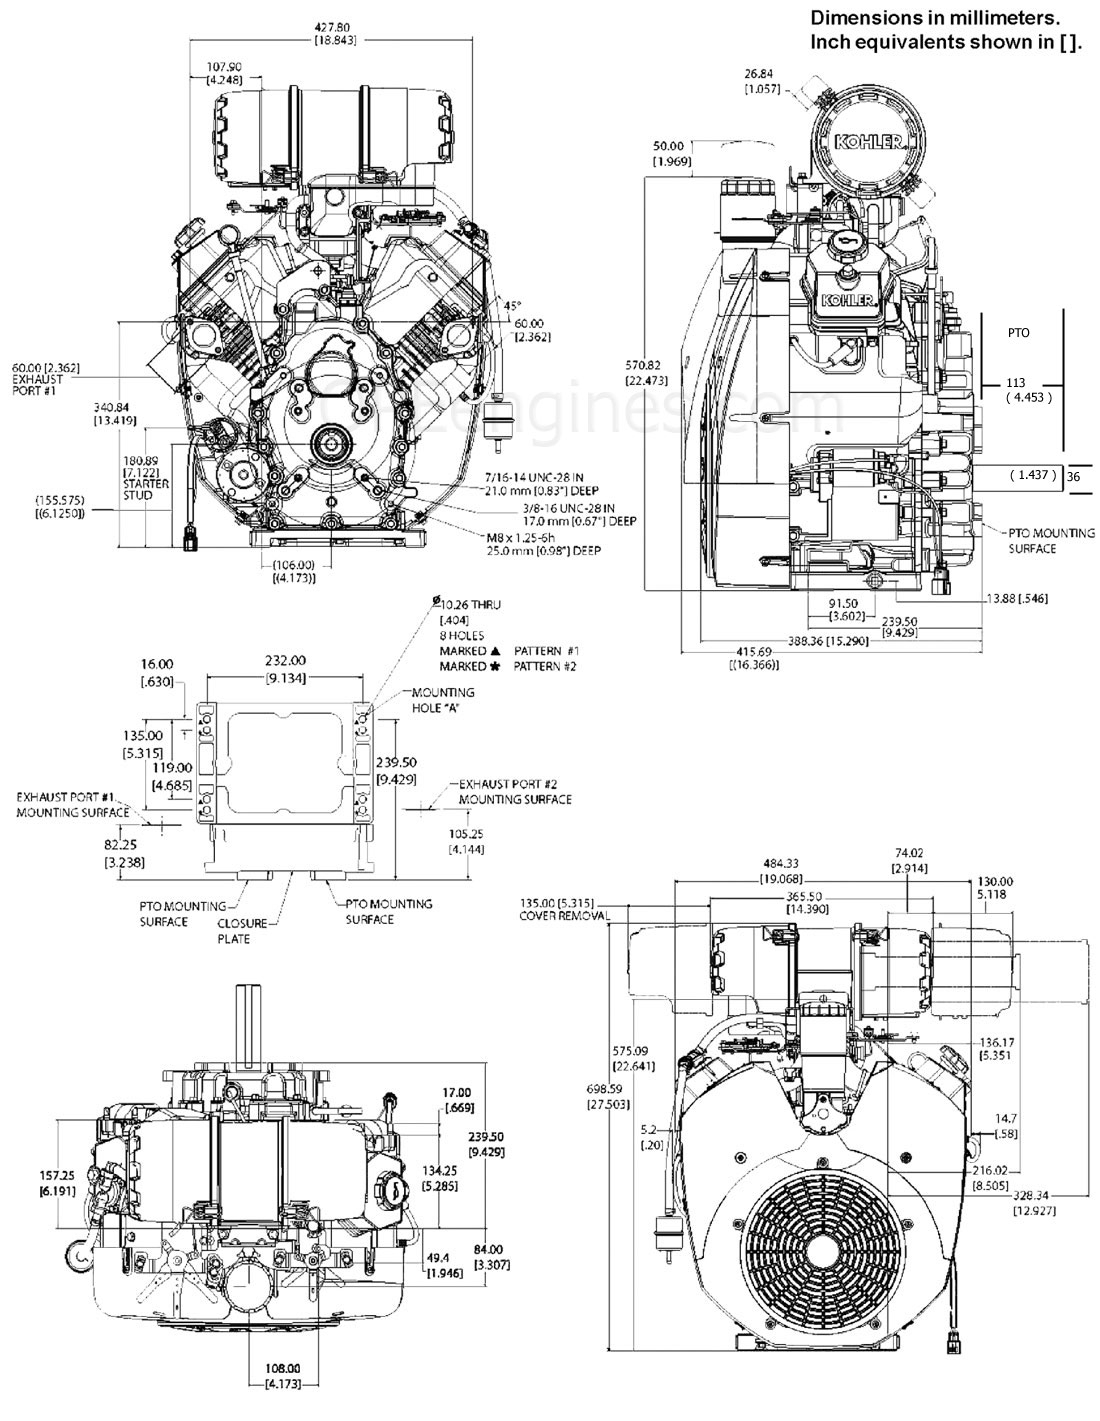 kohler engine wiring diagram Collection-Kohler Magnum 20 Parts Diagram Inspirational Charming Diagram Lawn Mower Engine Ideas Electrical Circuit 15-d